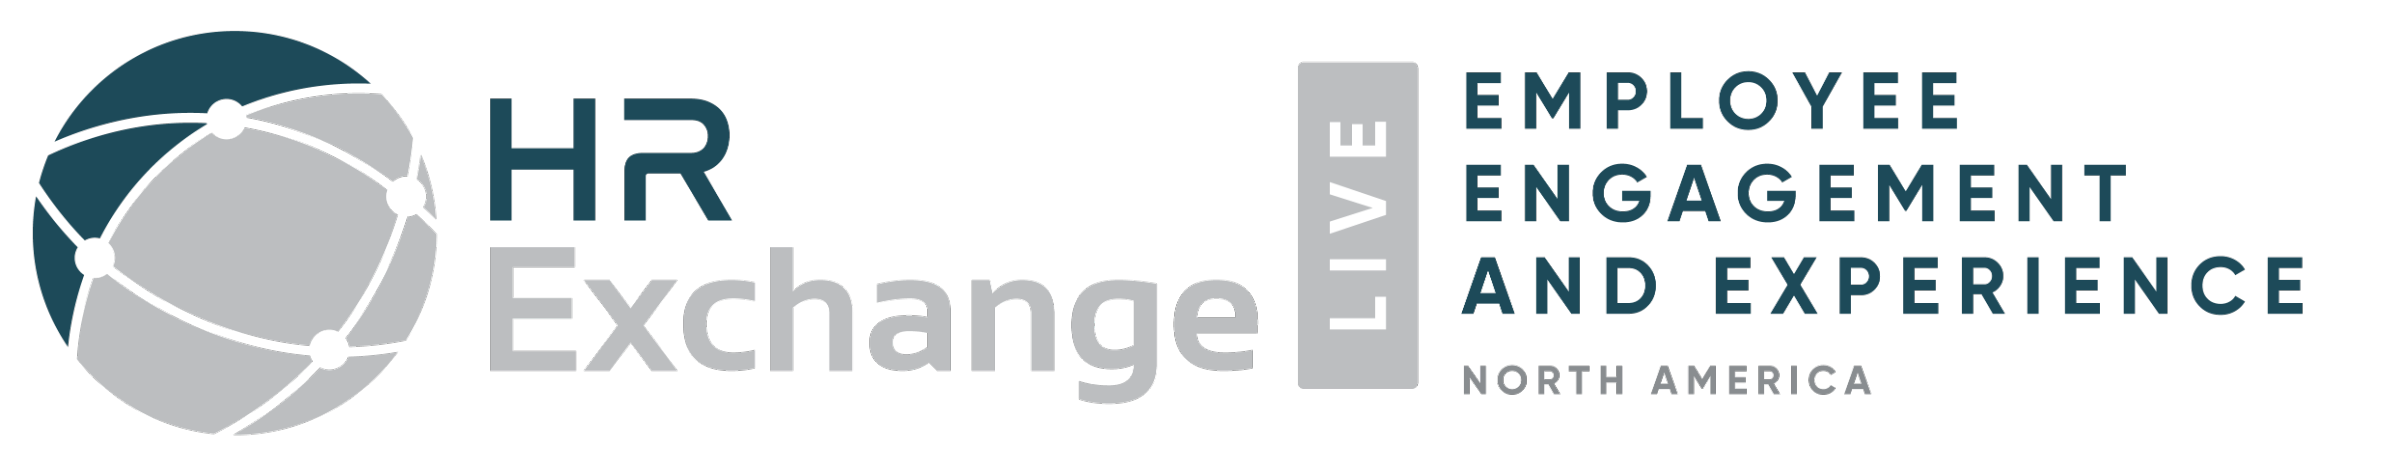 HR Exchange Live: Employee Engagement and Experience North America